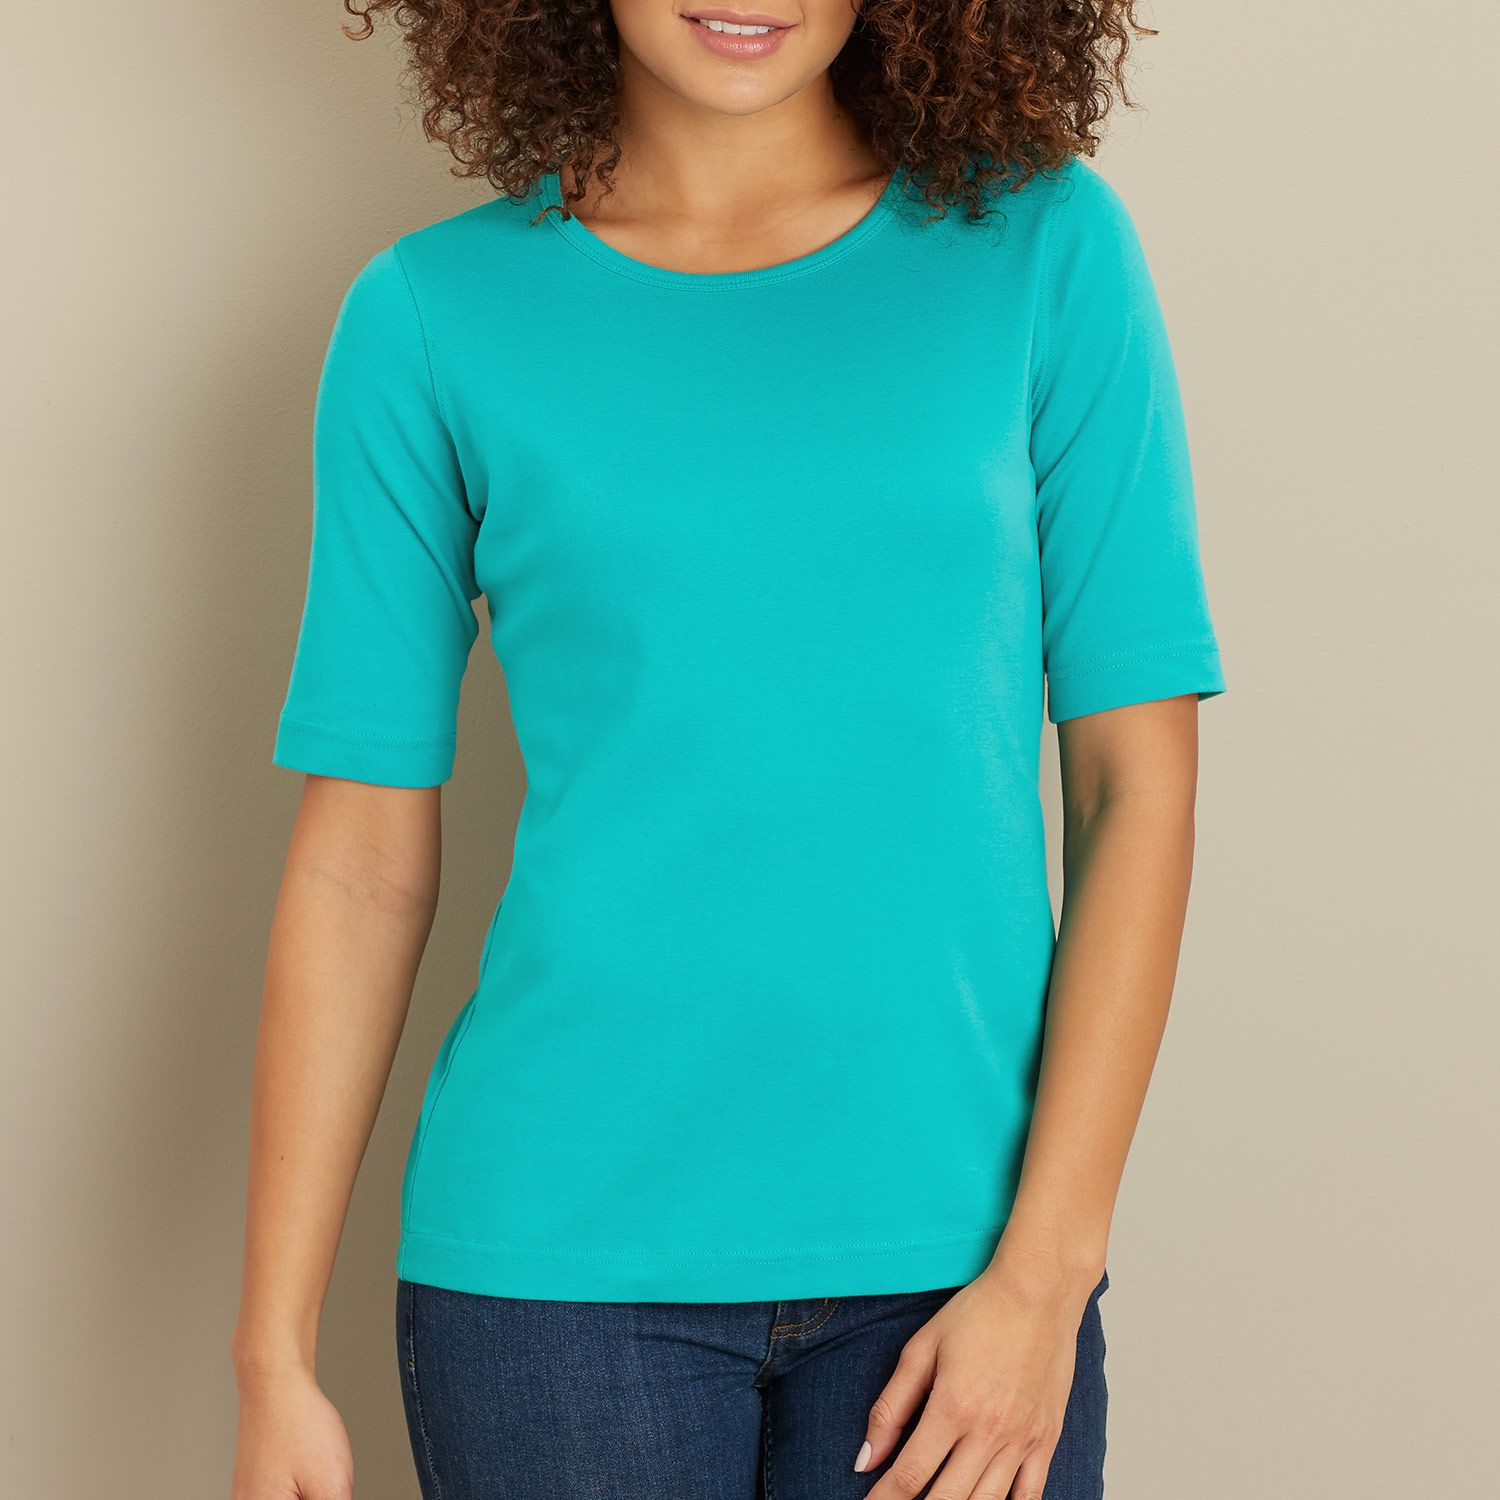 b3087f496 Women's Longtail T® Elbow Sleeve Scoop Neck Shirt has UPF 35 protection  built into the fabric, and it's 2